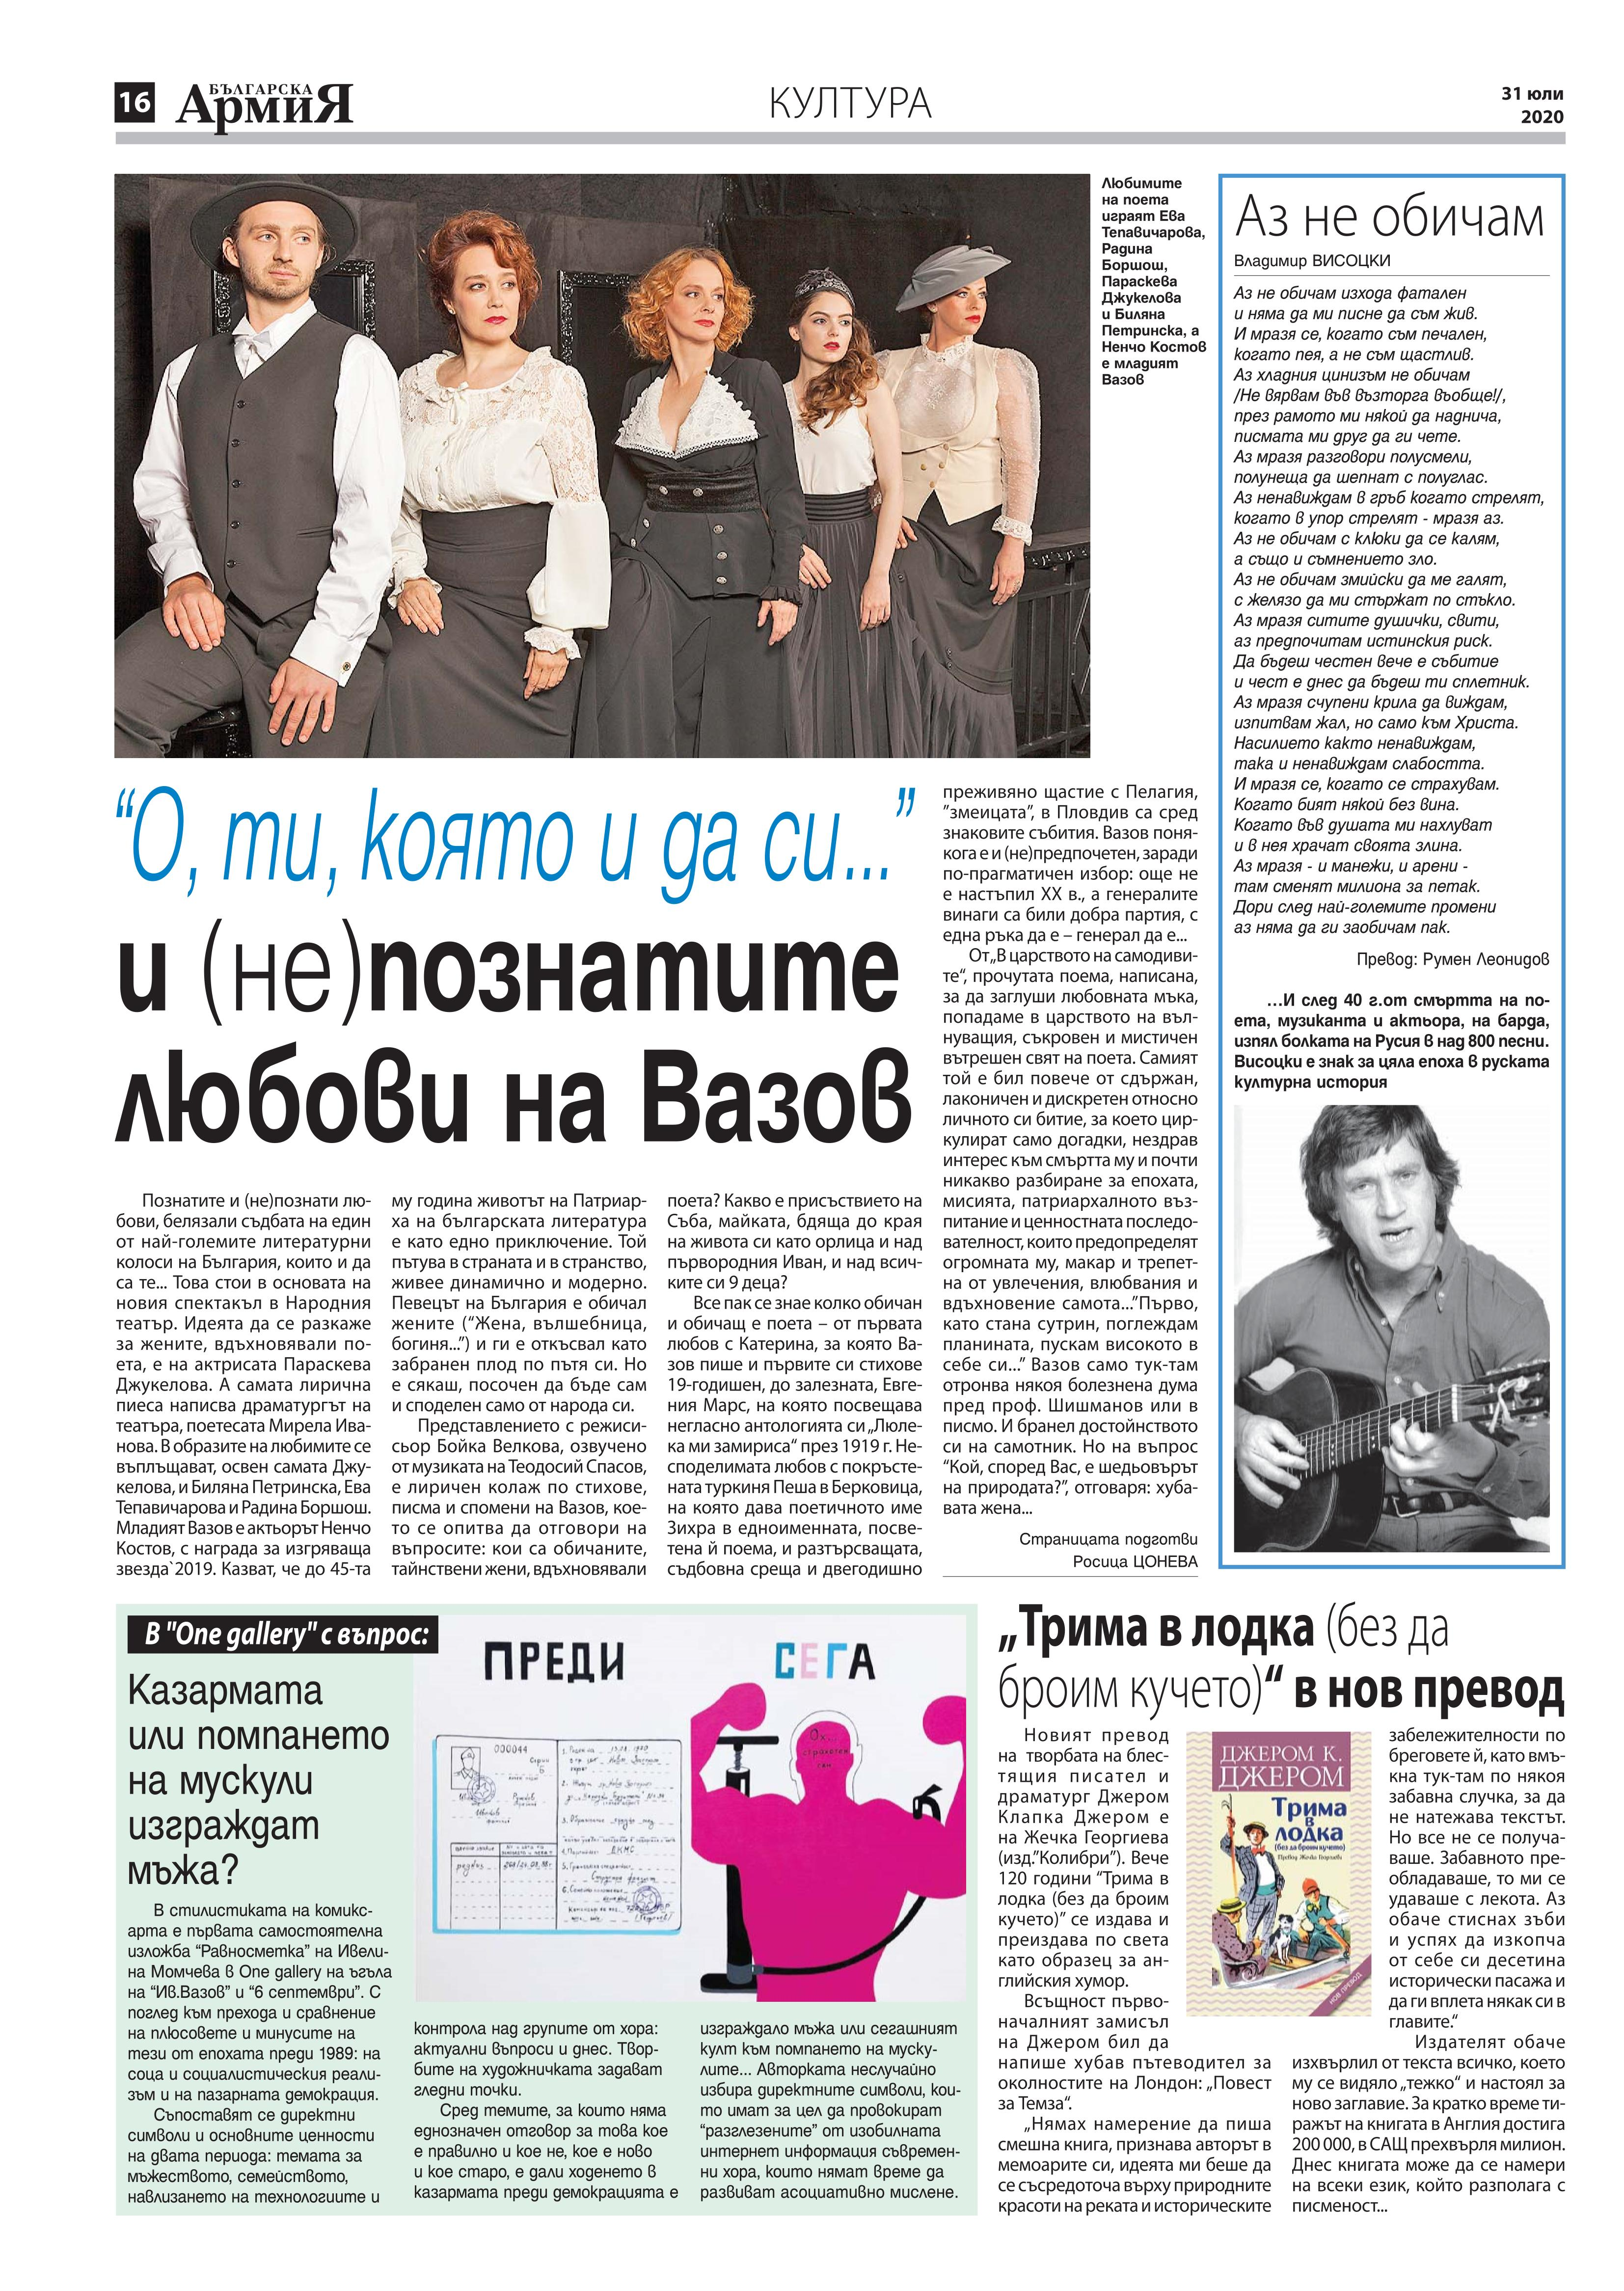 https://armymedia.bg/wp-content/uploads/2015/06/16.page1_-148.jpg